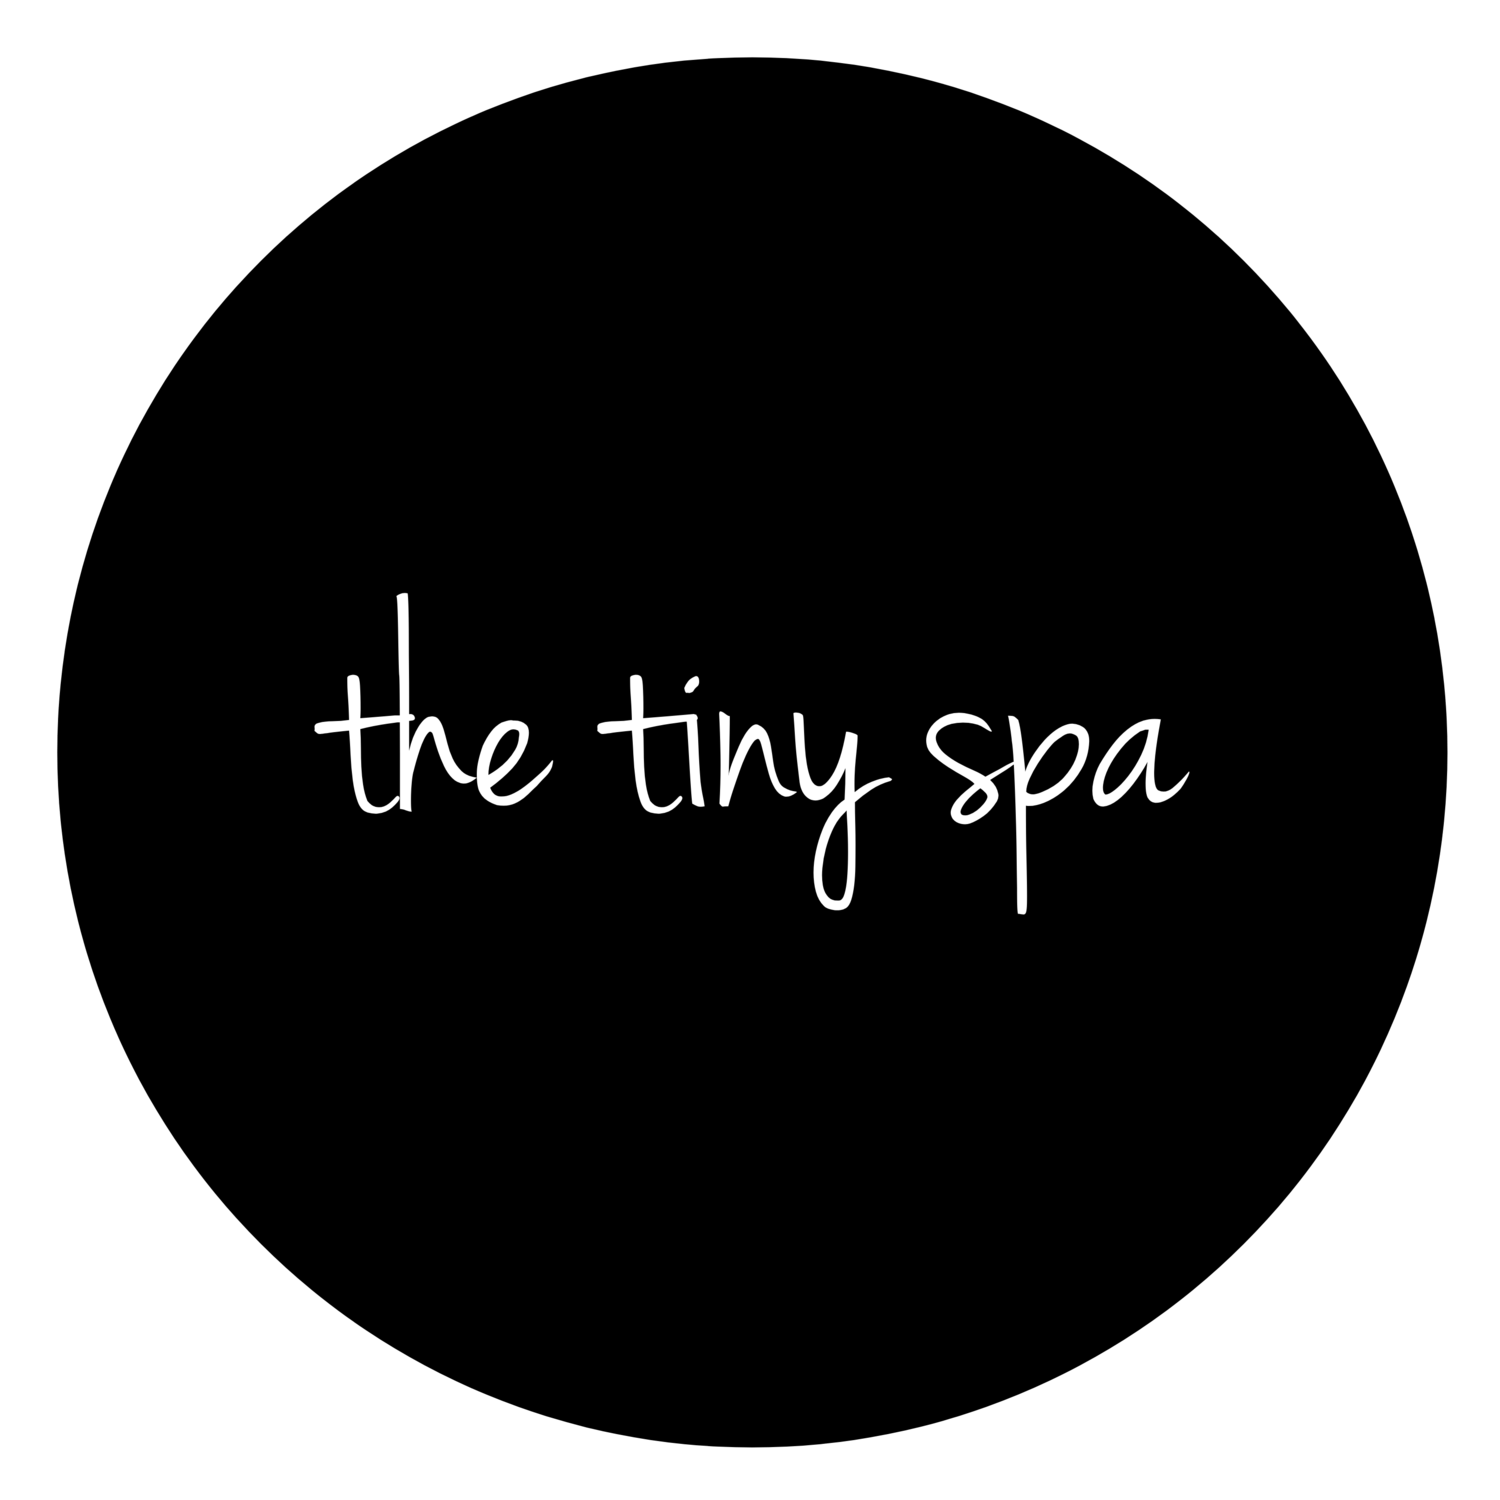 the tiny spa